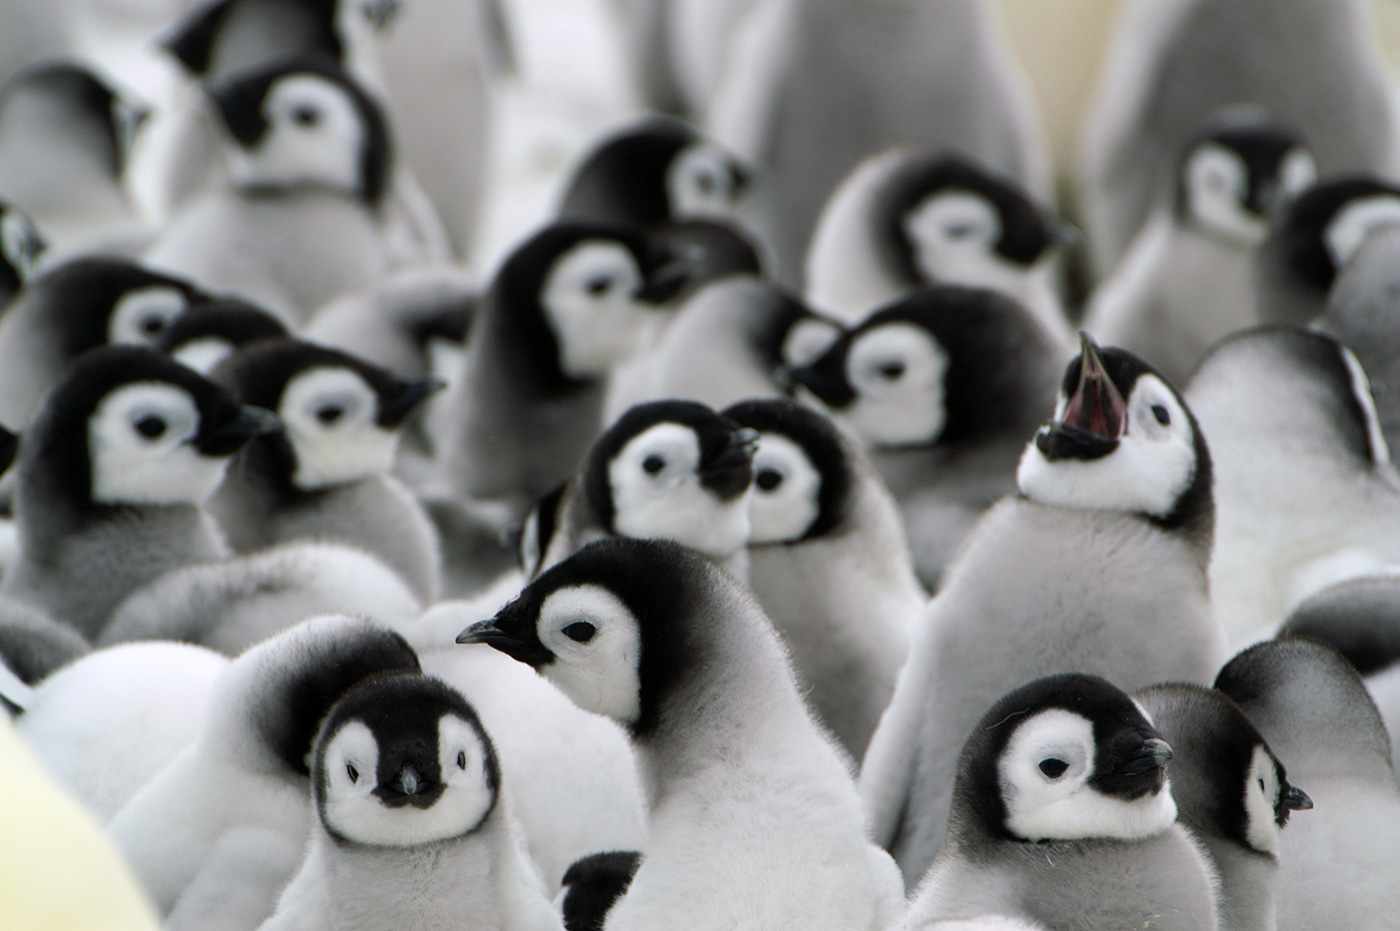 Emperor penguin chicks - Photo credit: Quark passenger: Rene